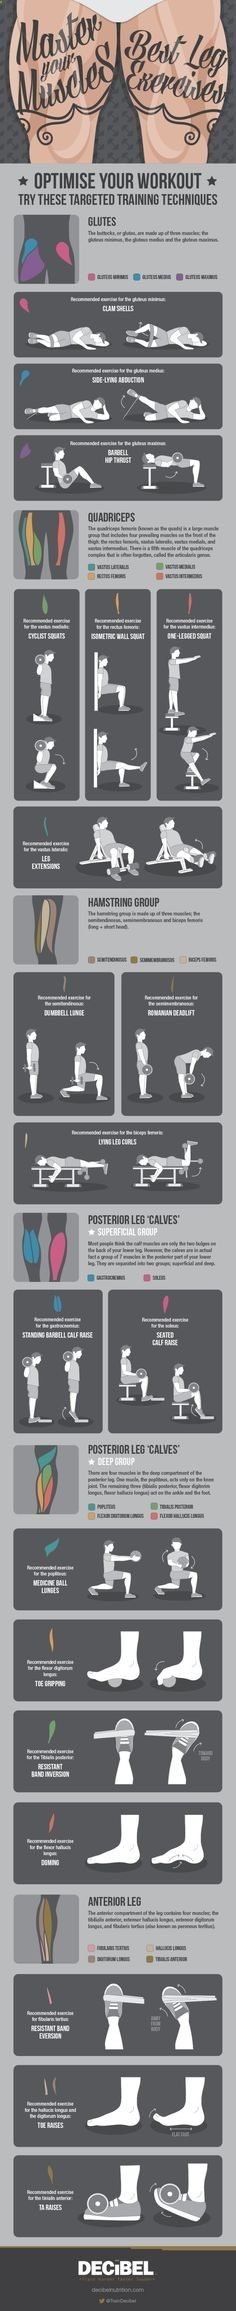 Excersices For Legs At Home and At The Gym - Master Your Muscles: Best Leg Exercises - Strengthening our legs is an exercise that we are going to make profitable from the beginning and, therefore, we must include it in our weekly training routine